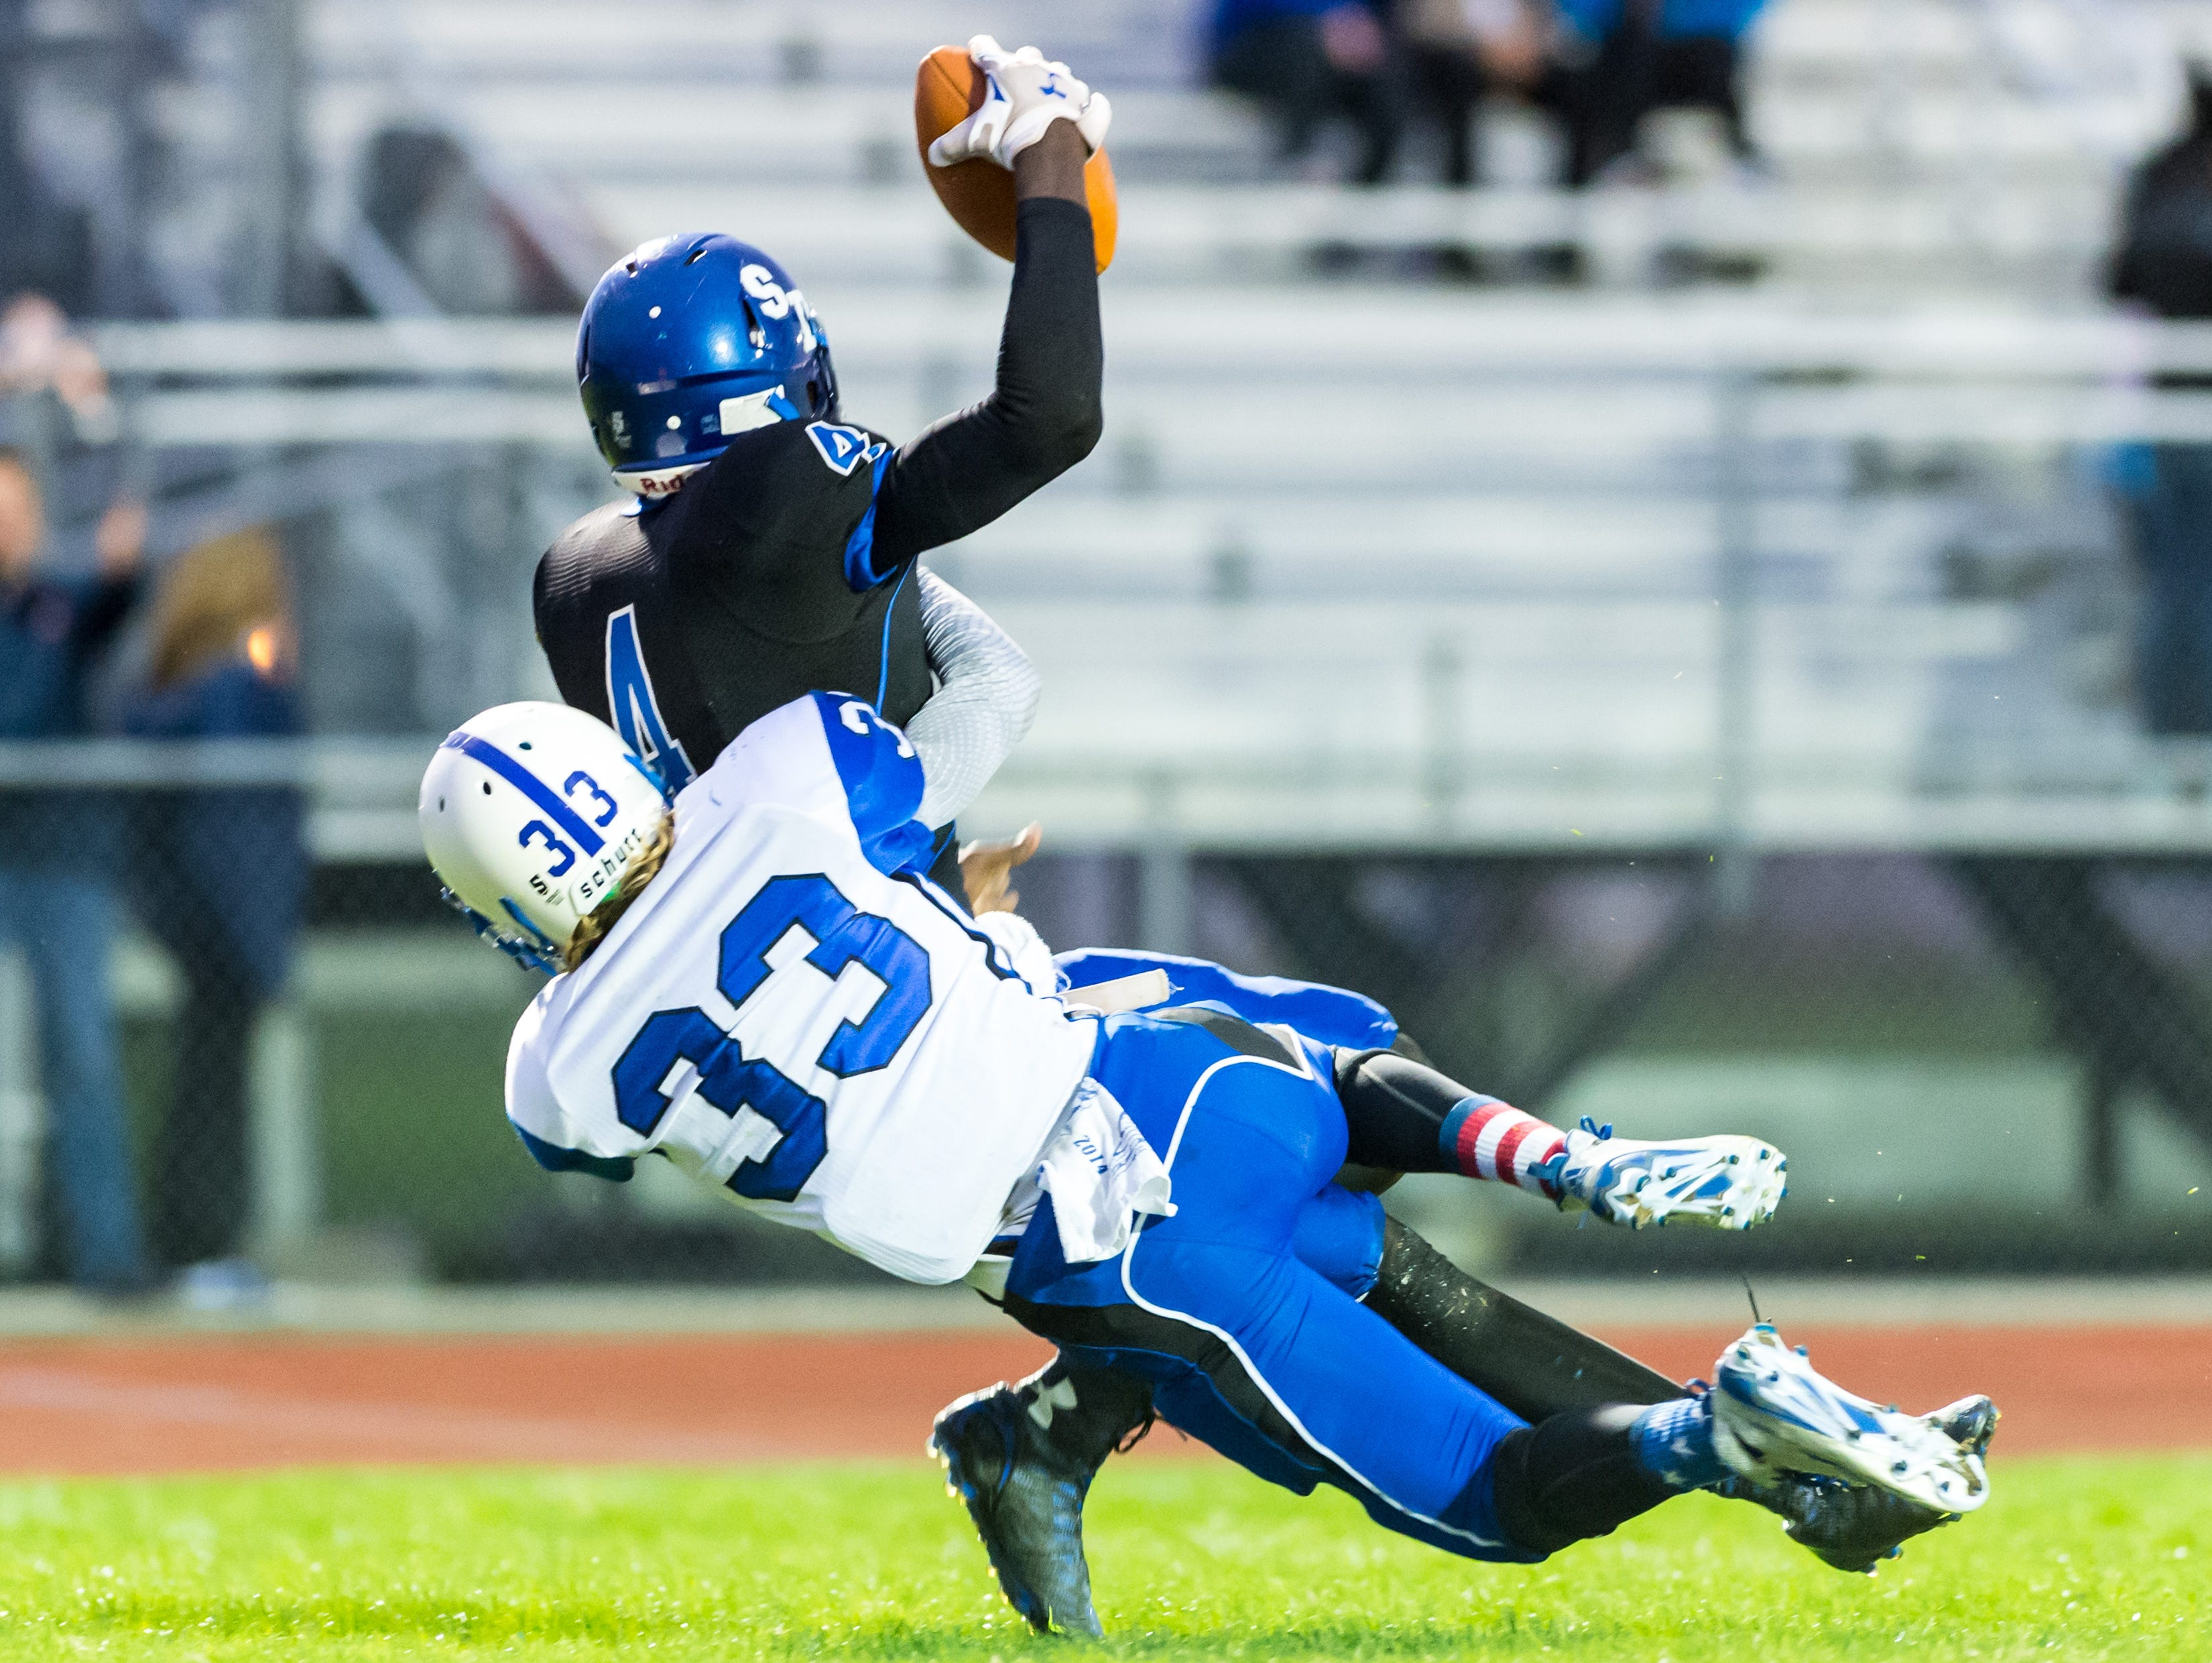 Stephen Decatur wide receiver Tyree Henry (4) hauls in a touchdown catch against North Caroline. Catches like this made Henry a threat this season before tearing his ACL.